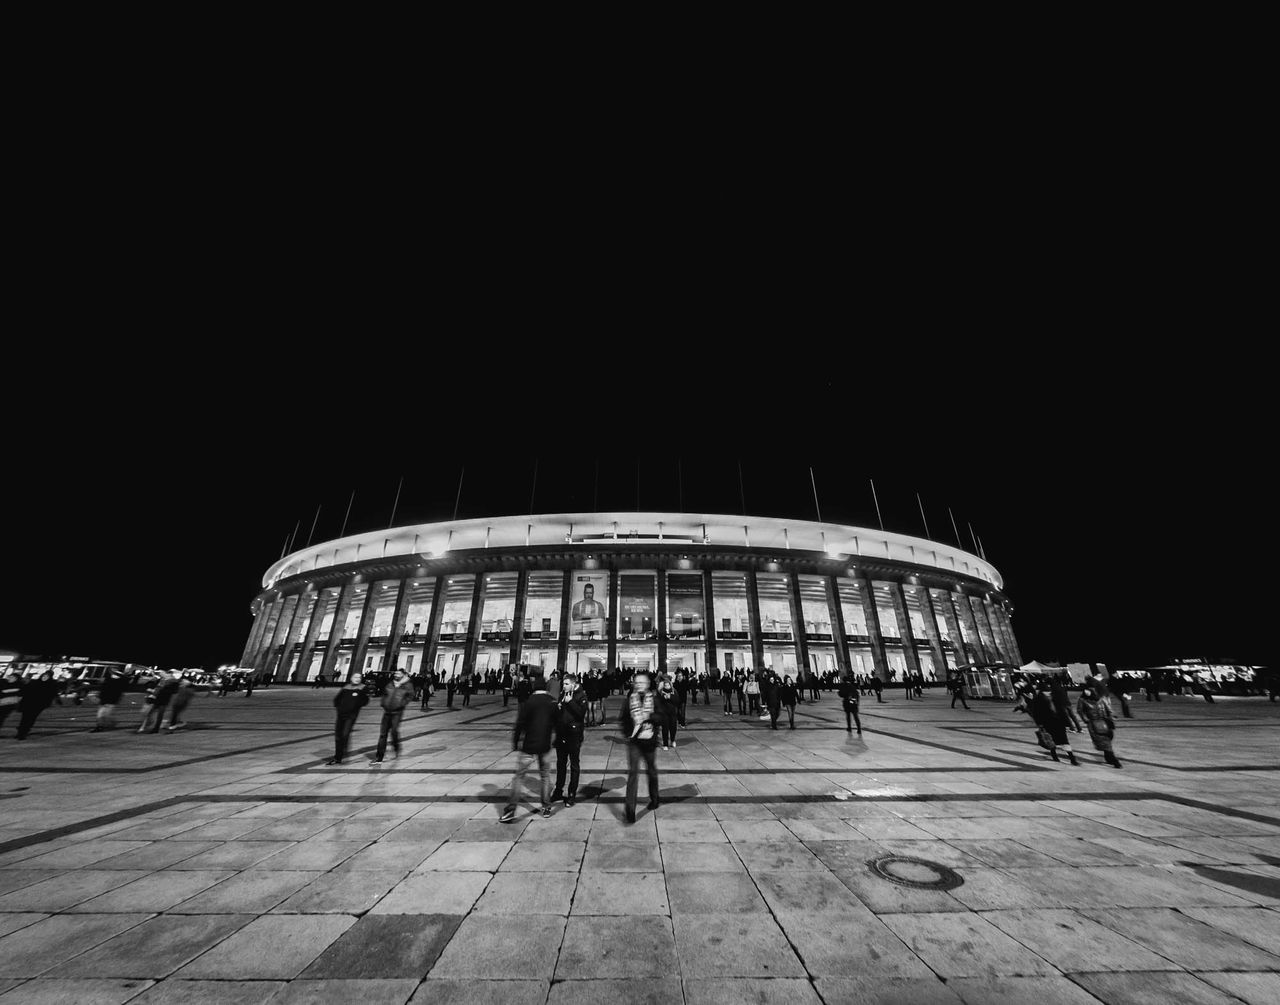 Architecture Architecture Berlin Black & White Black And White Blackandwhite Blackandwhite Photography Darkness And Light Football Stadium Hertha BSC Illuminated Lines And Shapes Night Old Buildings Olympiastadion Olympic Olympics Outdoors People Sport In The City Square Stadium Street Photography Streetphoto_bw Streetphotography